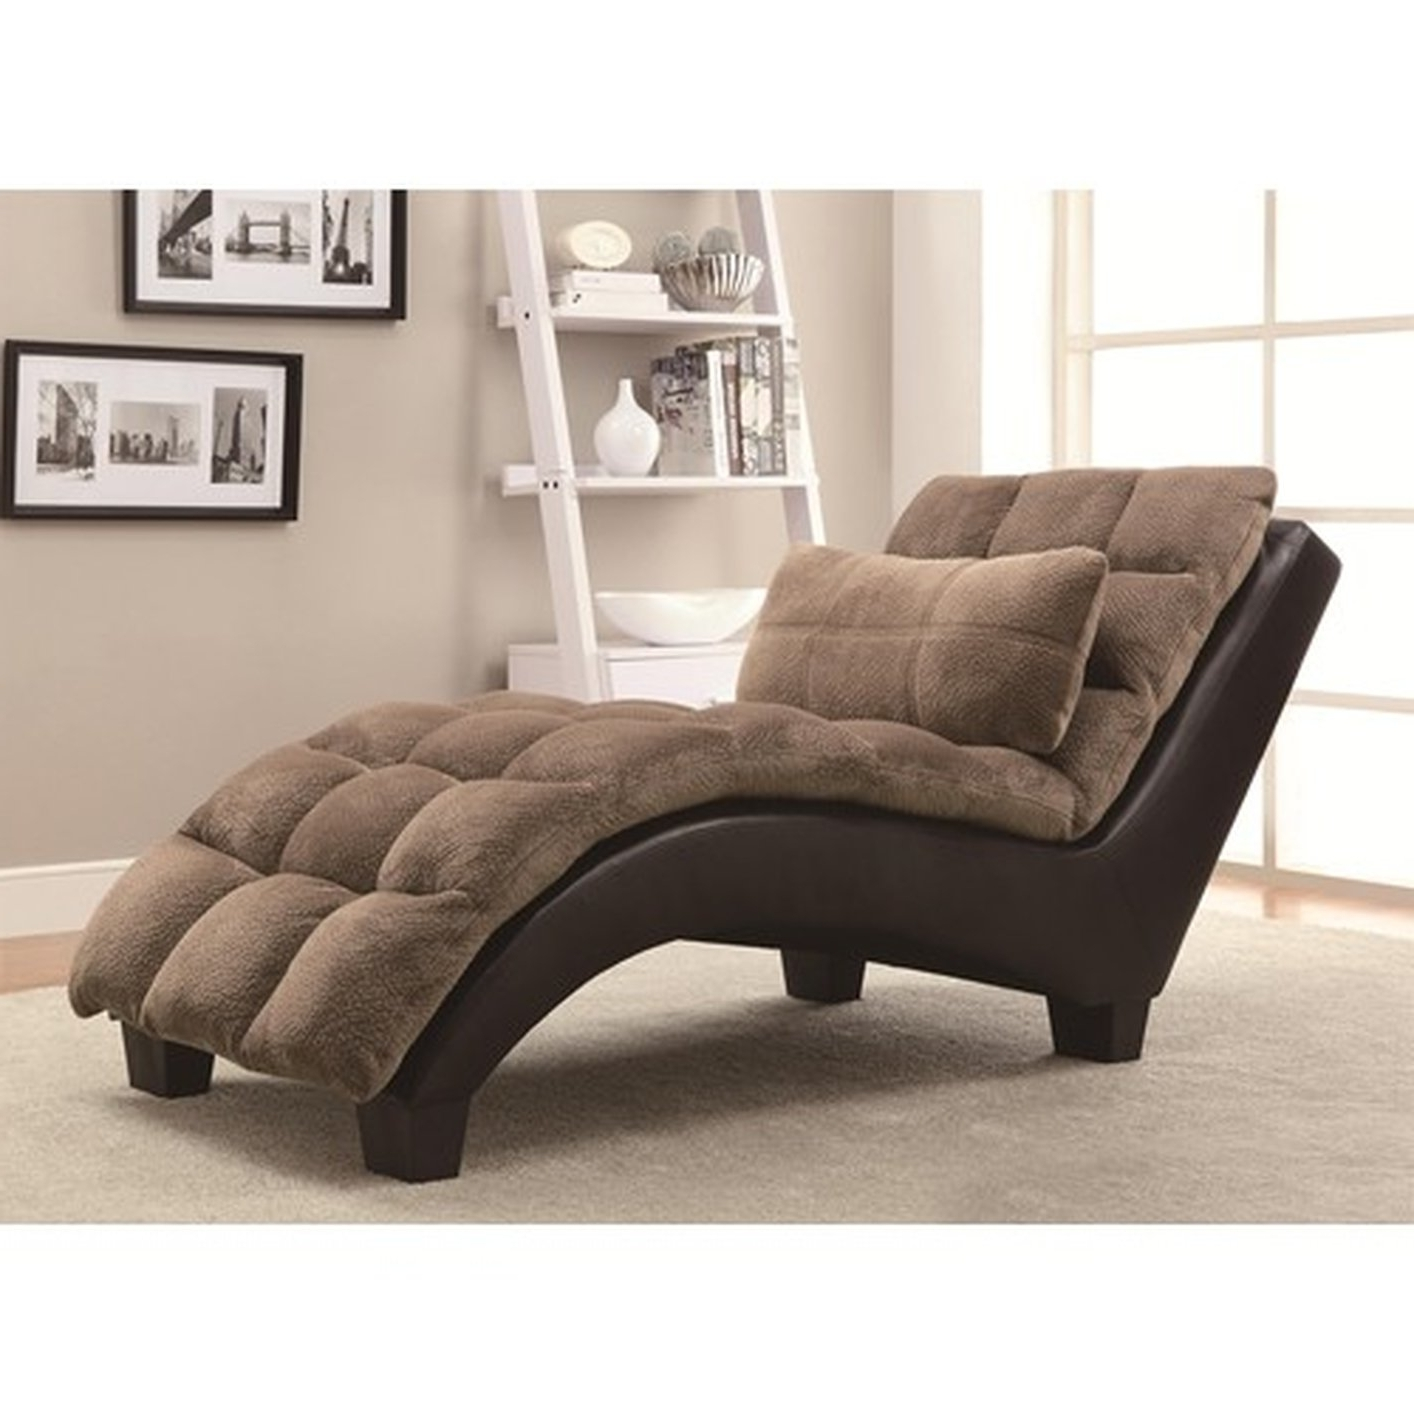 Most Recently Released Brown Fabric Chaise Lounge – Steal A Sofa Furniture Outlet Los Pertaining To Fabric Chaise Lounge Chairs (View 12 of 15)